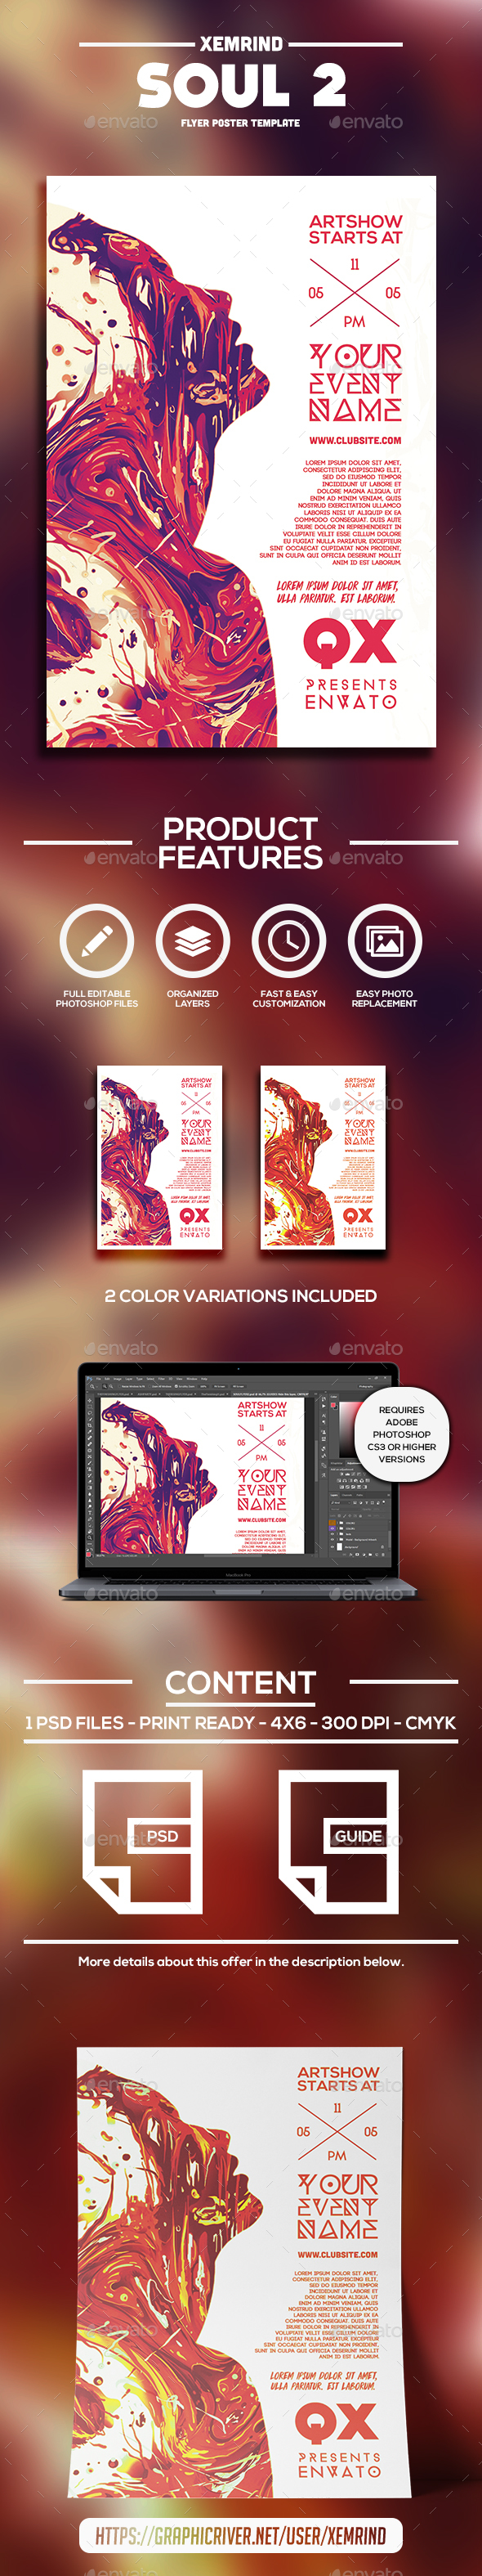 Soul 2 Flyer Template - Clubs & Parties Events